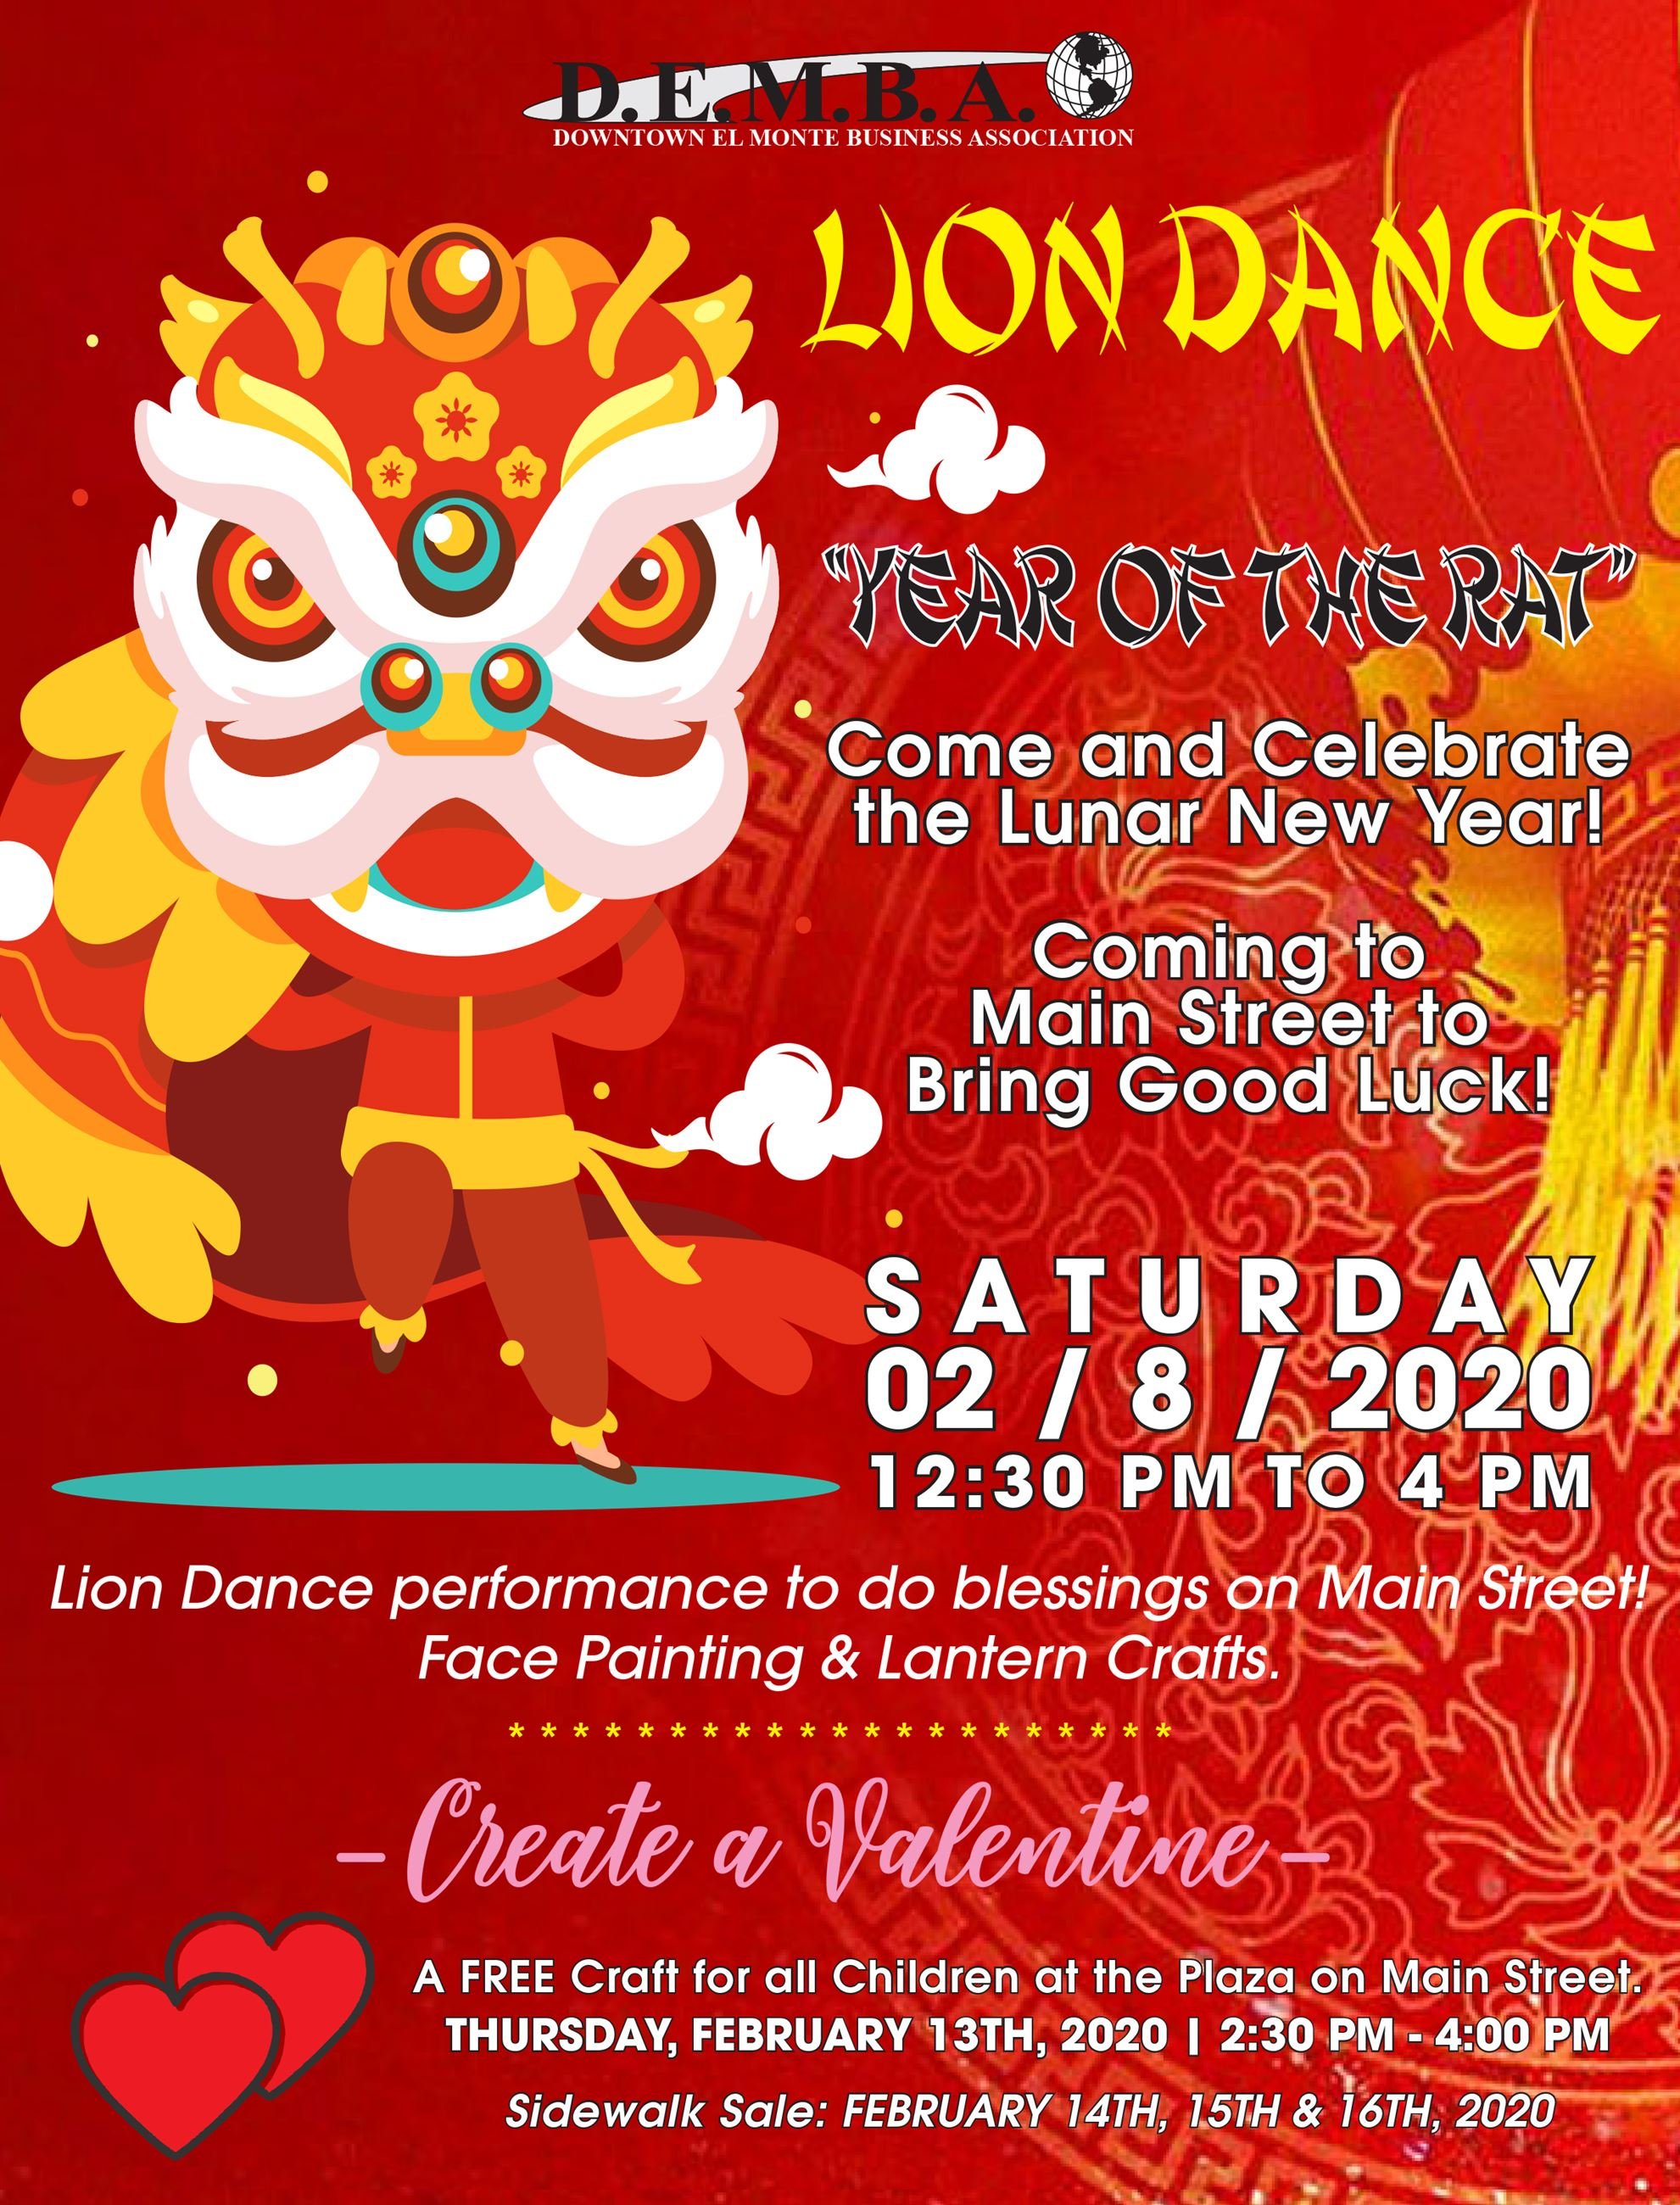 2nd Proof - DEMBA_2020 Lion Dance and Create A Valentine FLYER